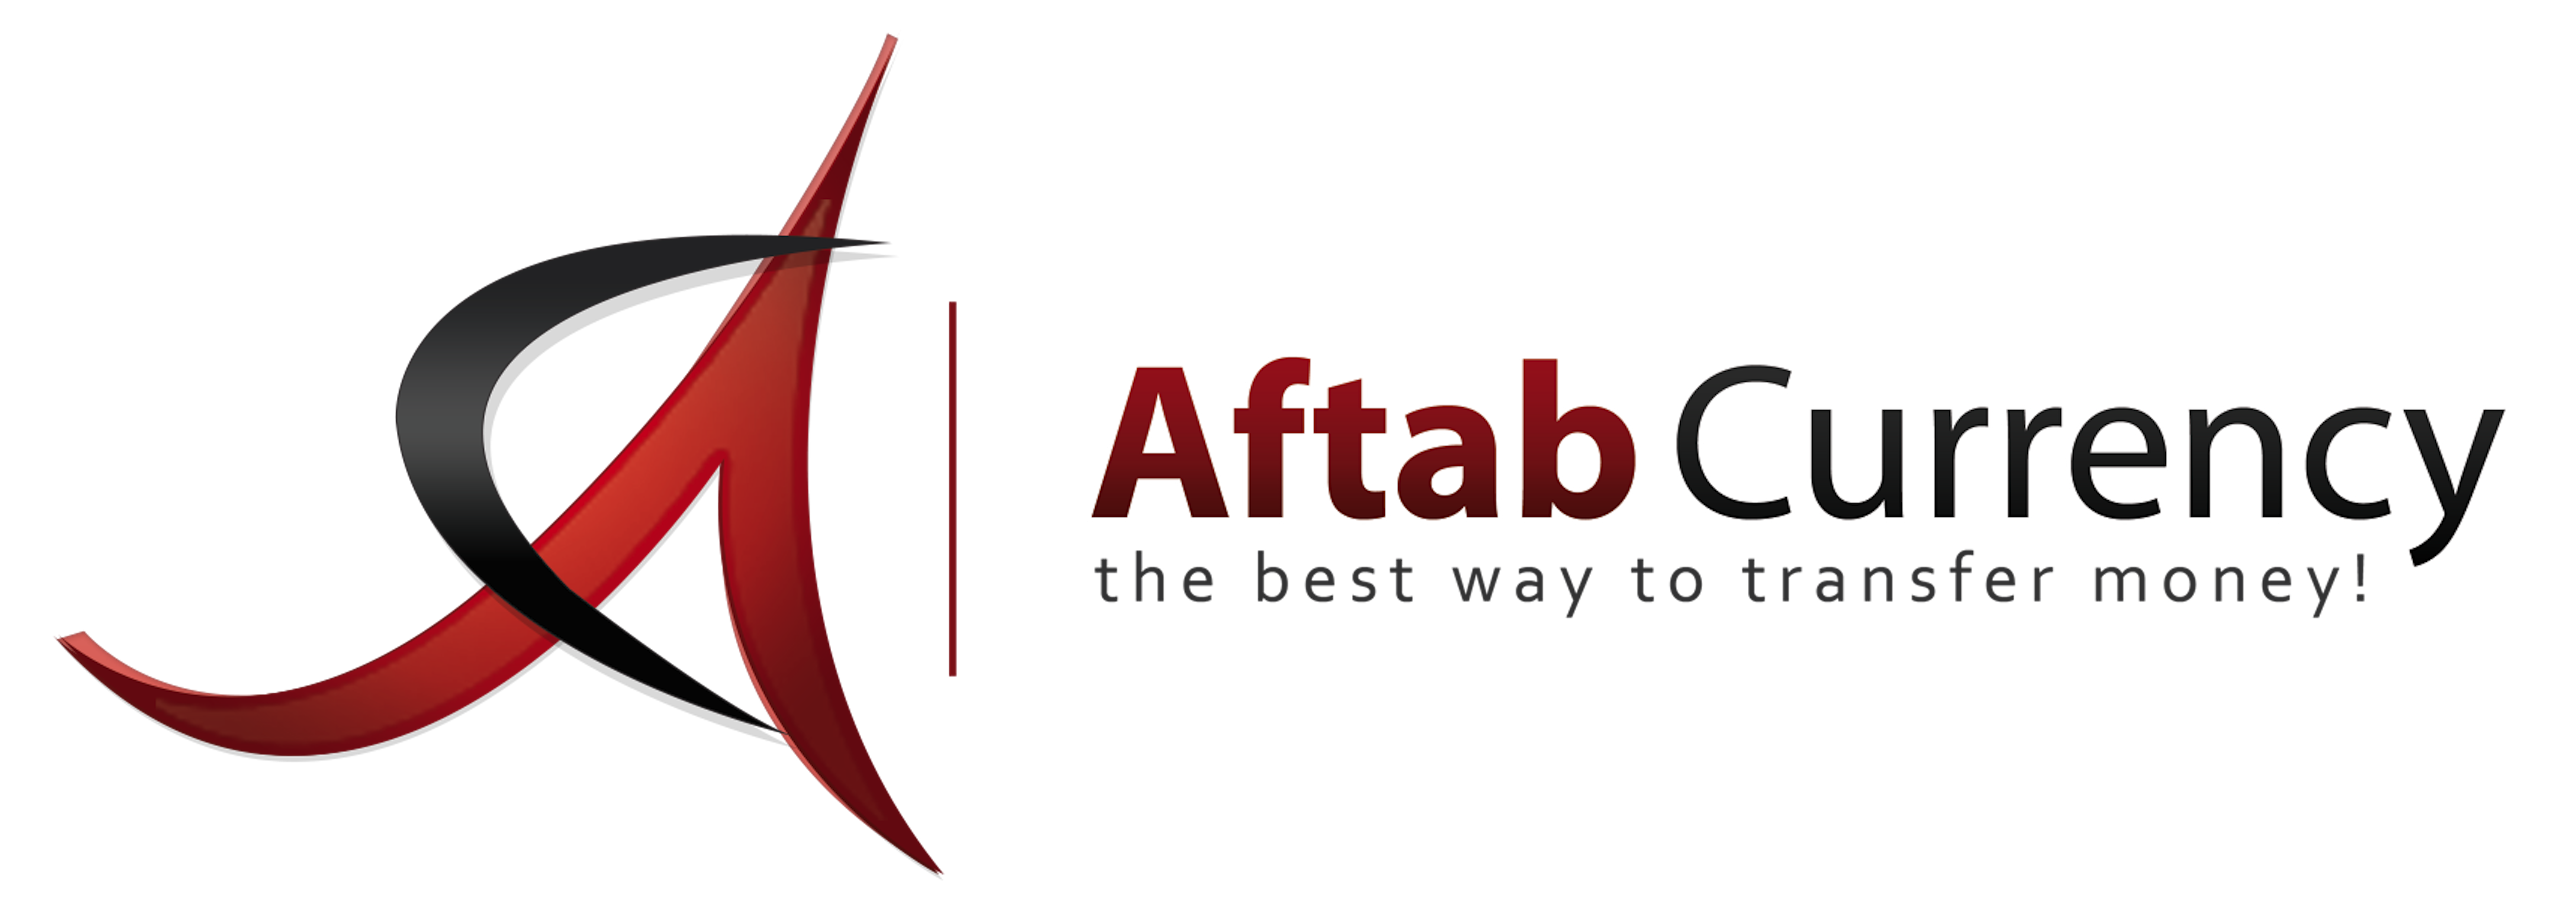 Aftab-1-a.png